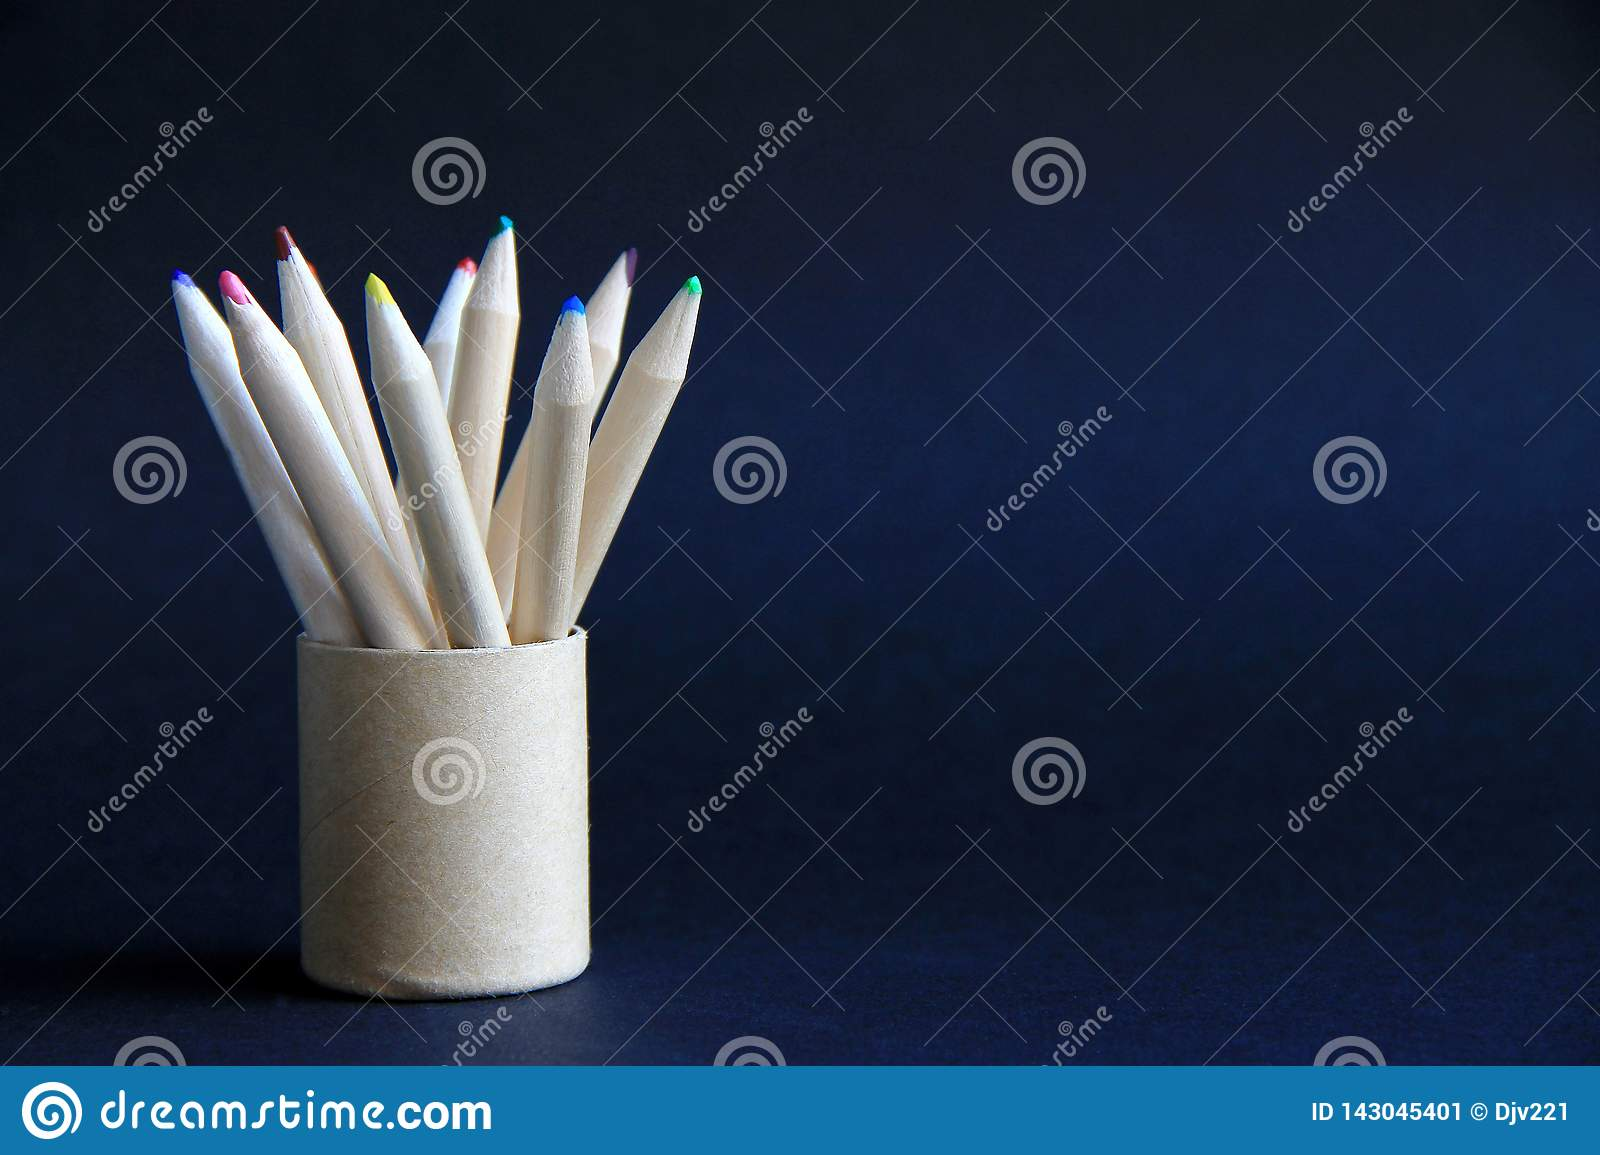 Colored pencils in a round cardboard box on a dark background